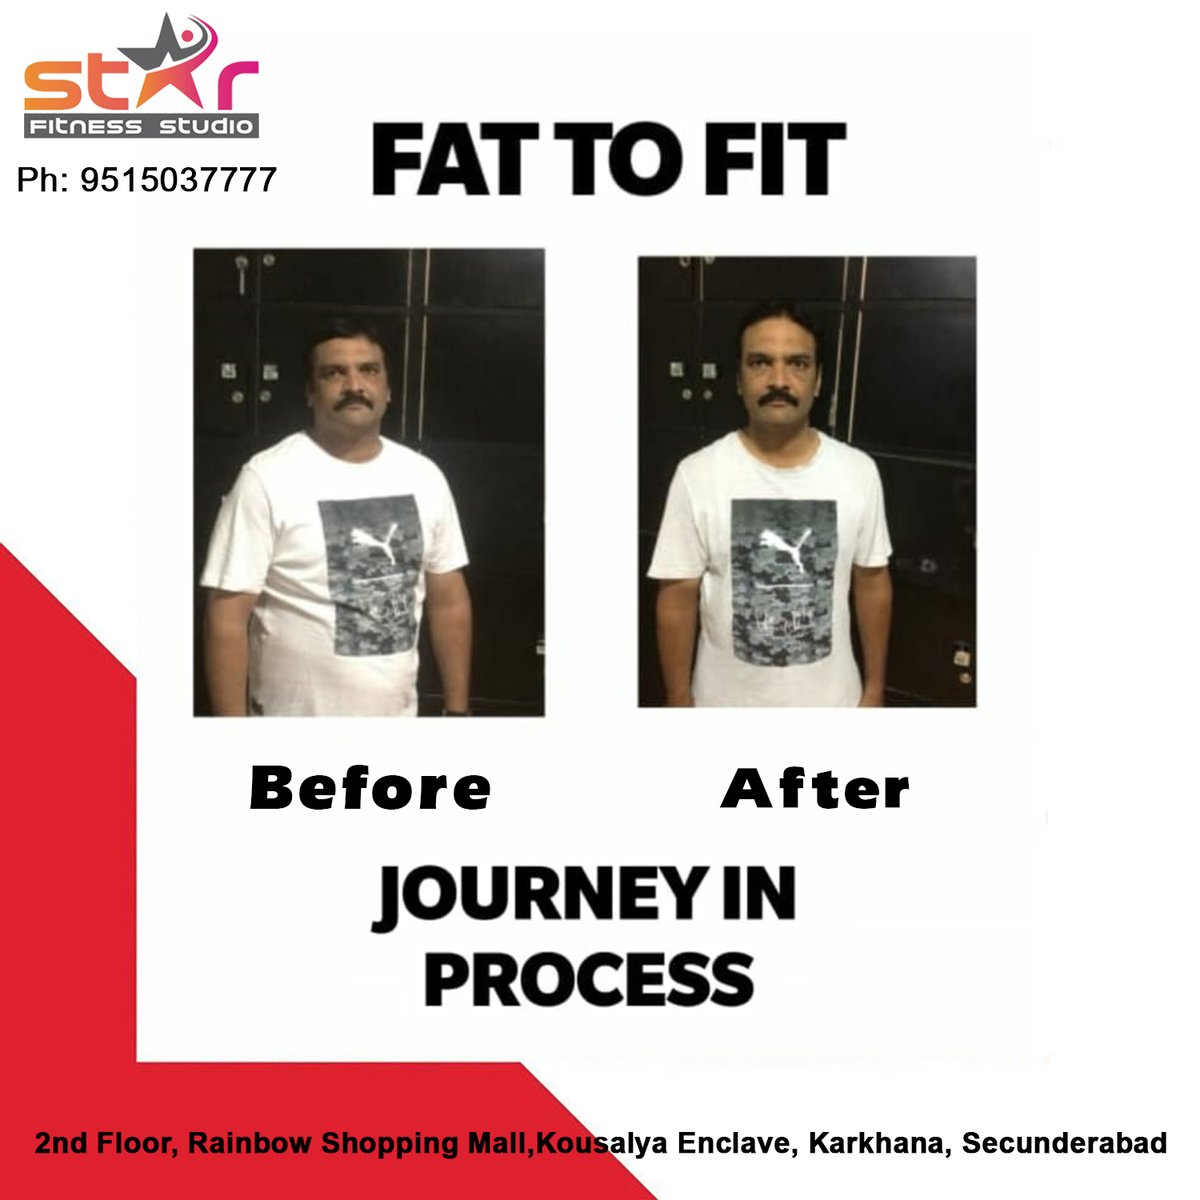 This is the perfect place to get Your weight goal reached by Starfitnessstudio.   Ph: 9515037777  #starfitnessstudio #fitnessstudio #fitness #workout #gym #fit #training #personaltrainer #fitfam  #sport #bodybuilding #motivation #personaltraining #fitnessmotivation #fitnessclub